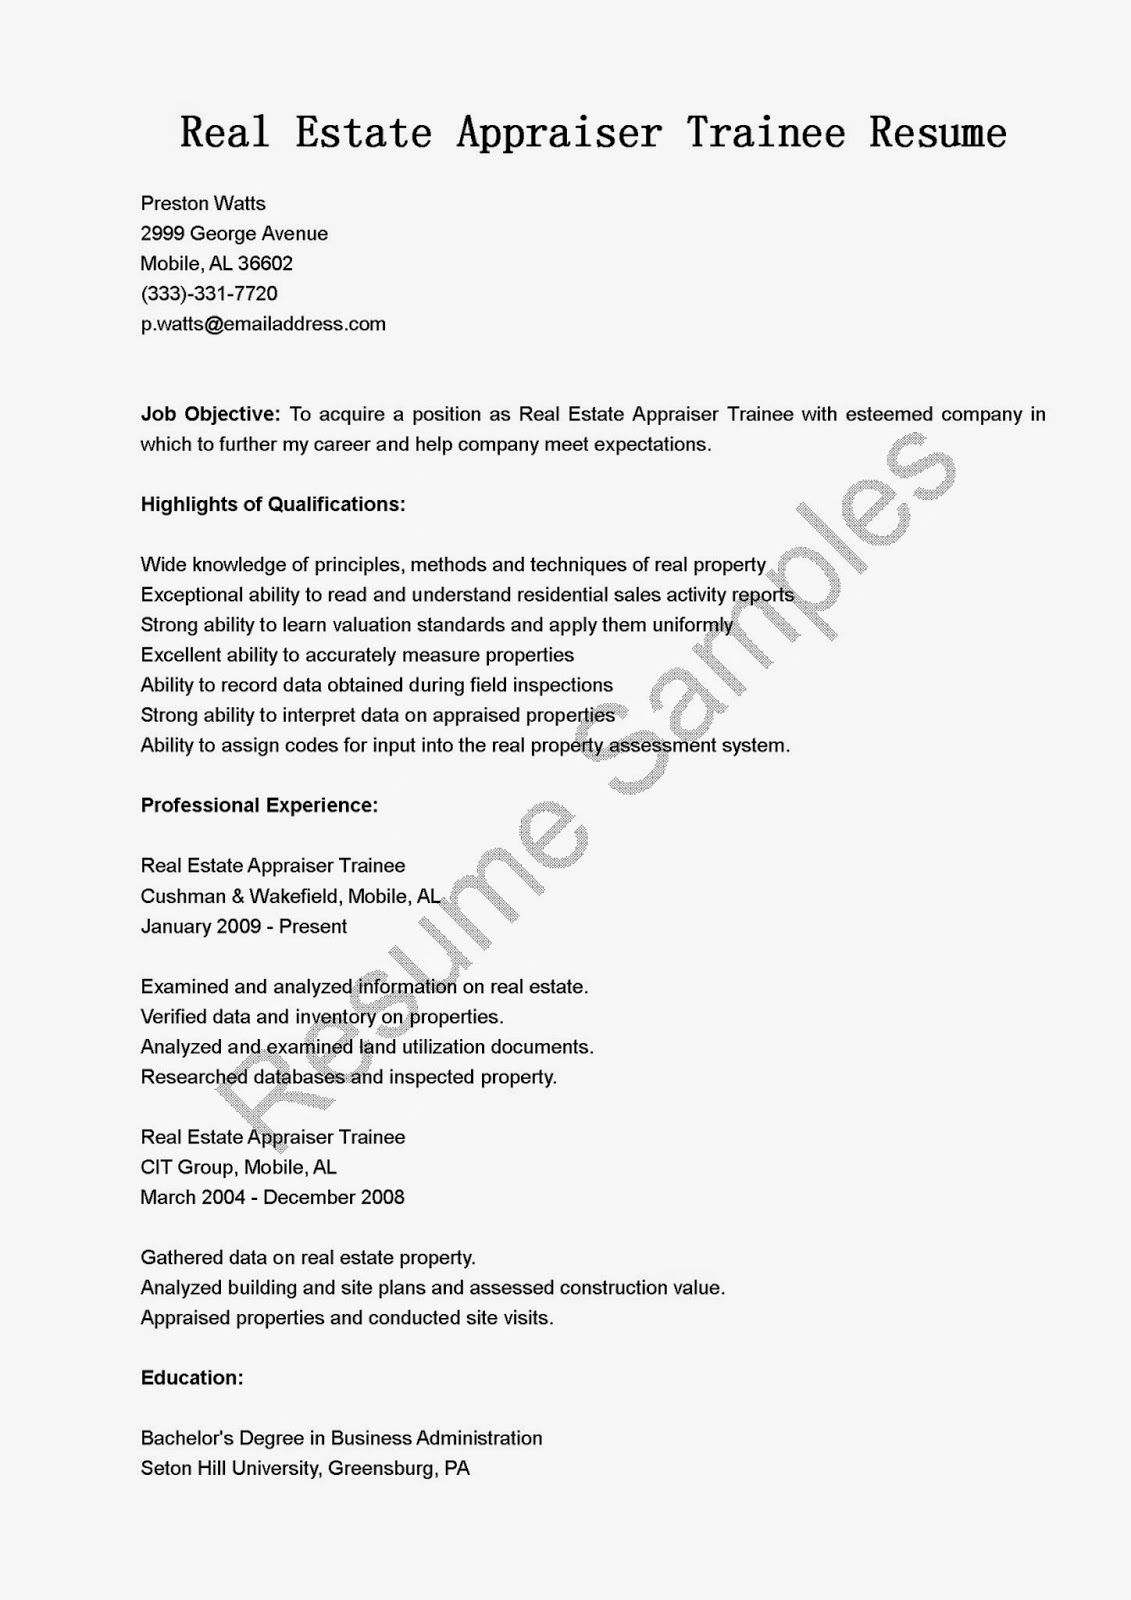 Sample Real Estate Resume Real Estate Appraiser Trainee Resume Sample Resume